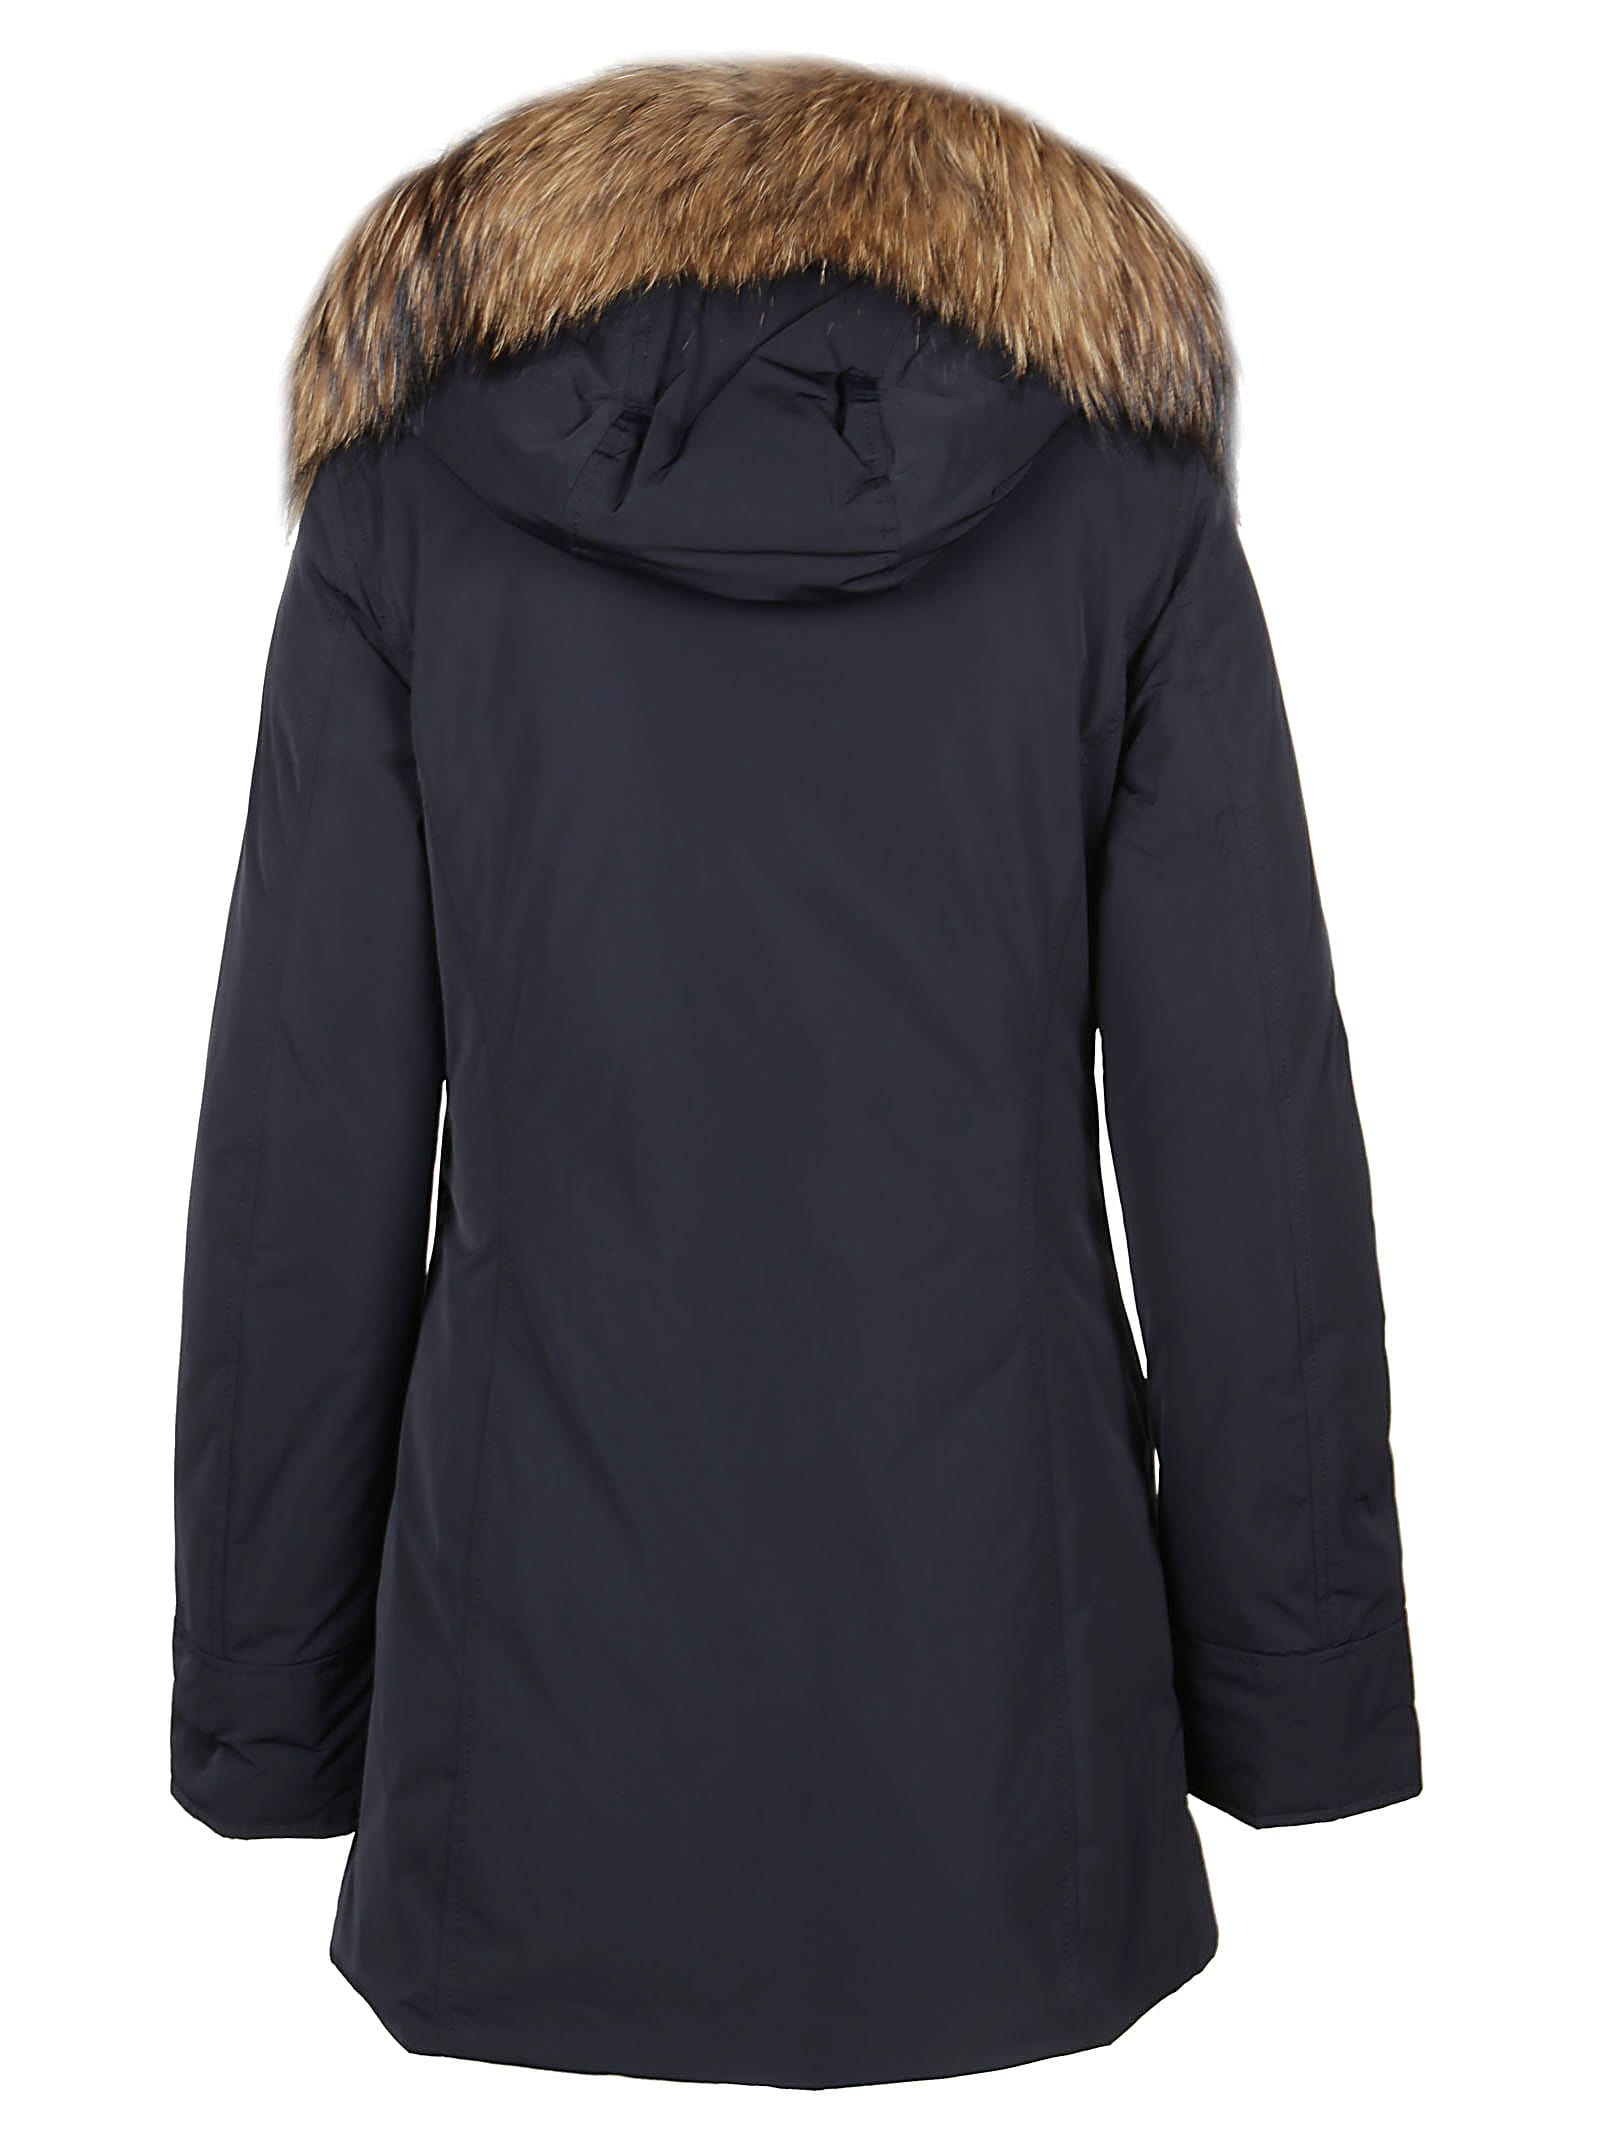 Photo of  Woolrich Parka Luxury Arctic- shop Woolrich jackets online sales